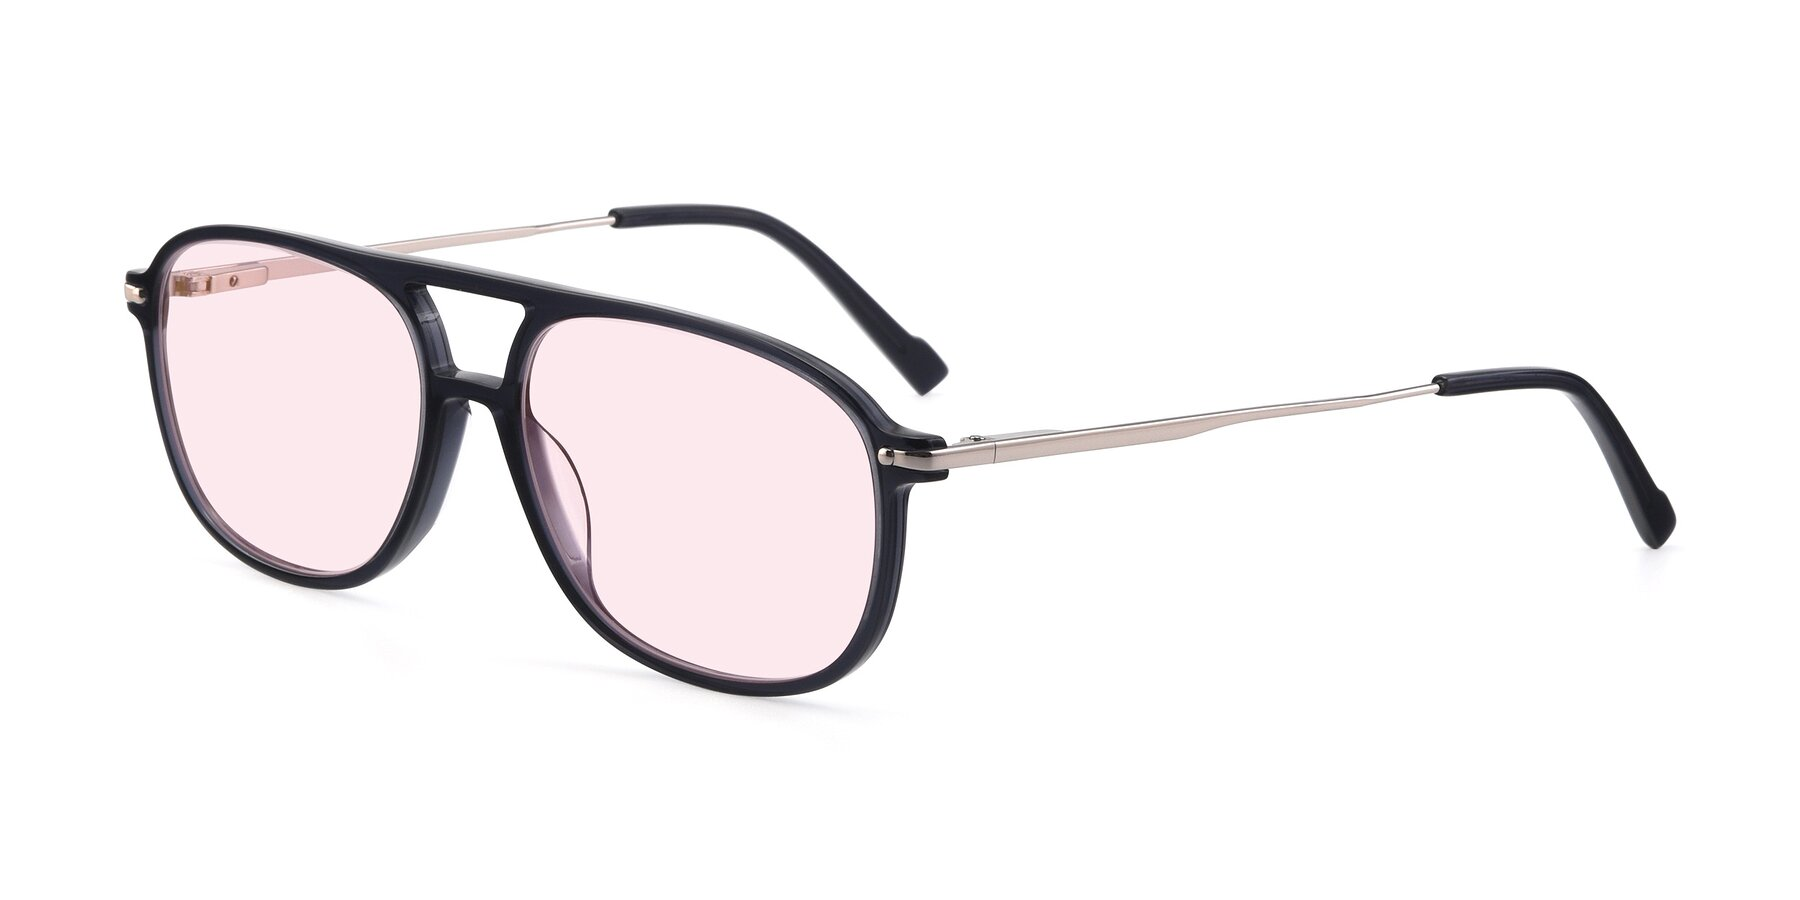 Angle of 17580 in Dark Bluish Gray with Light Pink Tinted Lenses